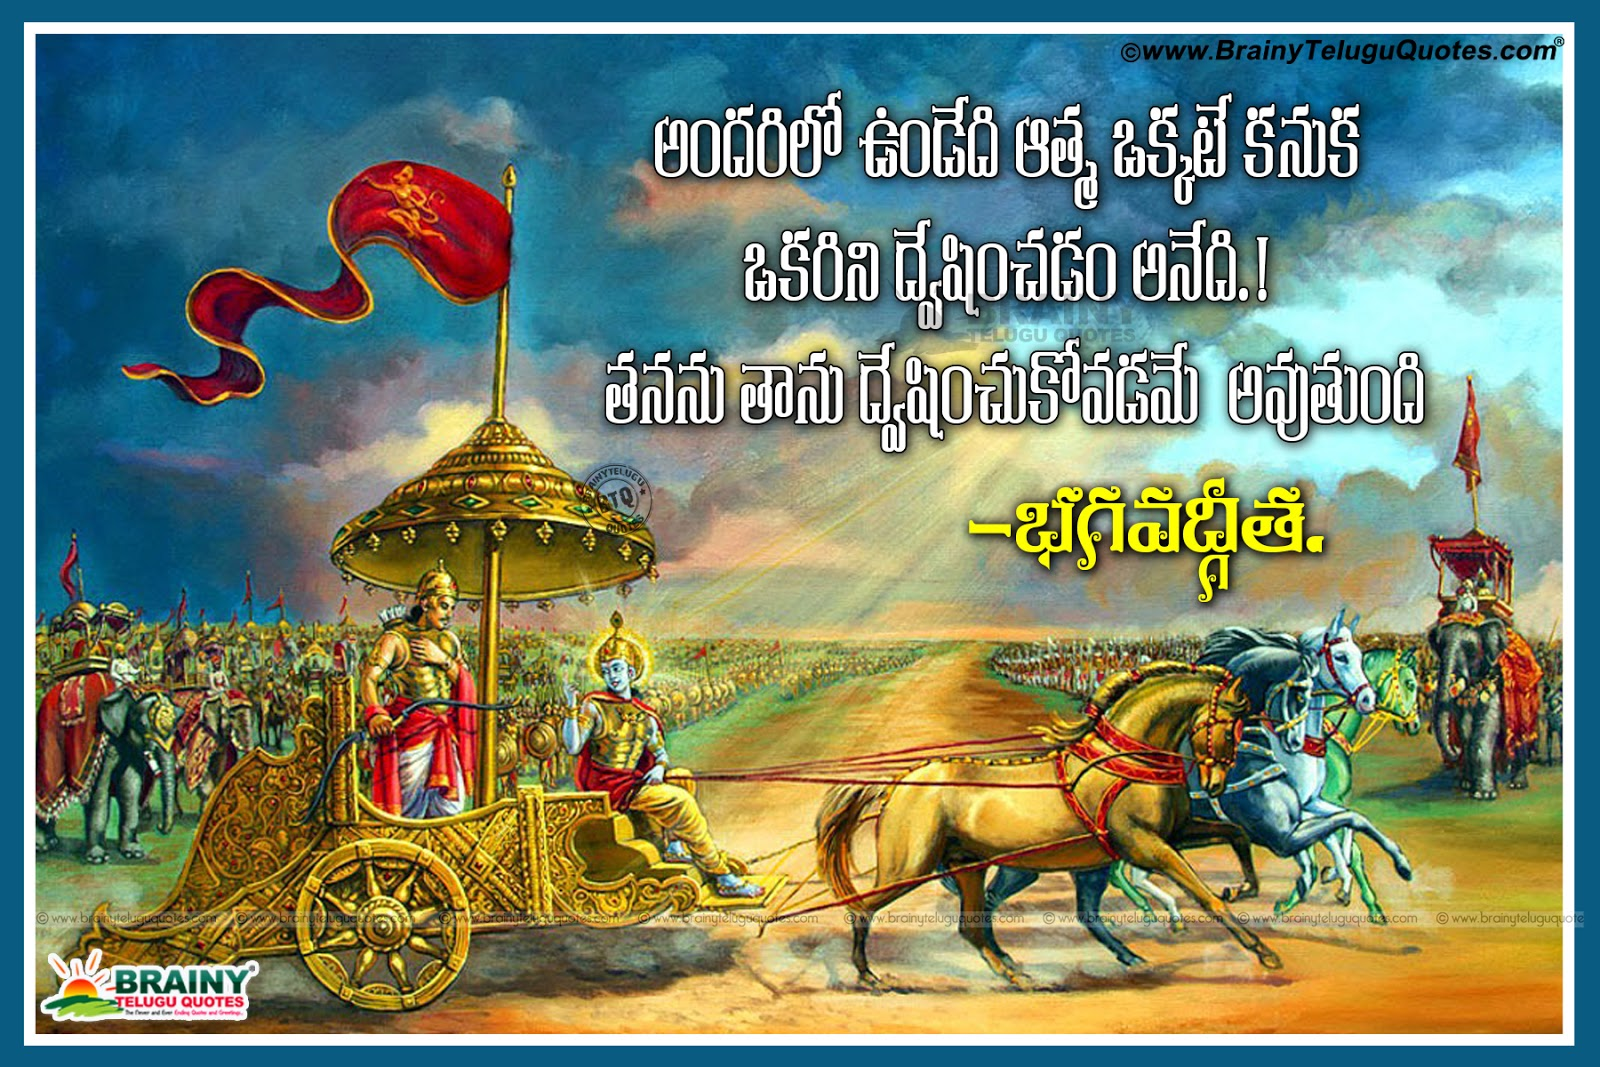 Bhagavad gita in telugu free download mp3